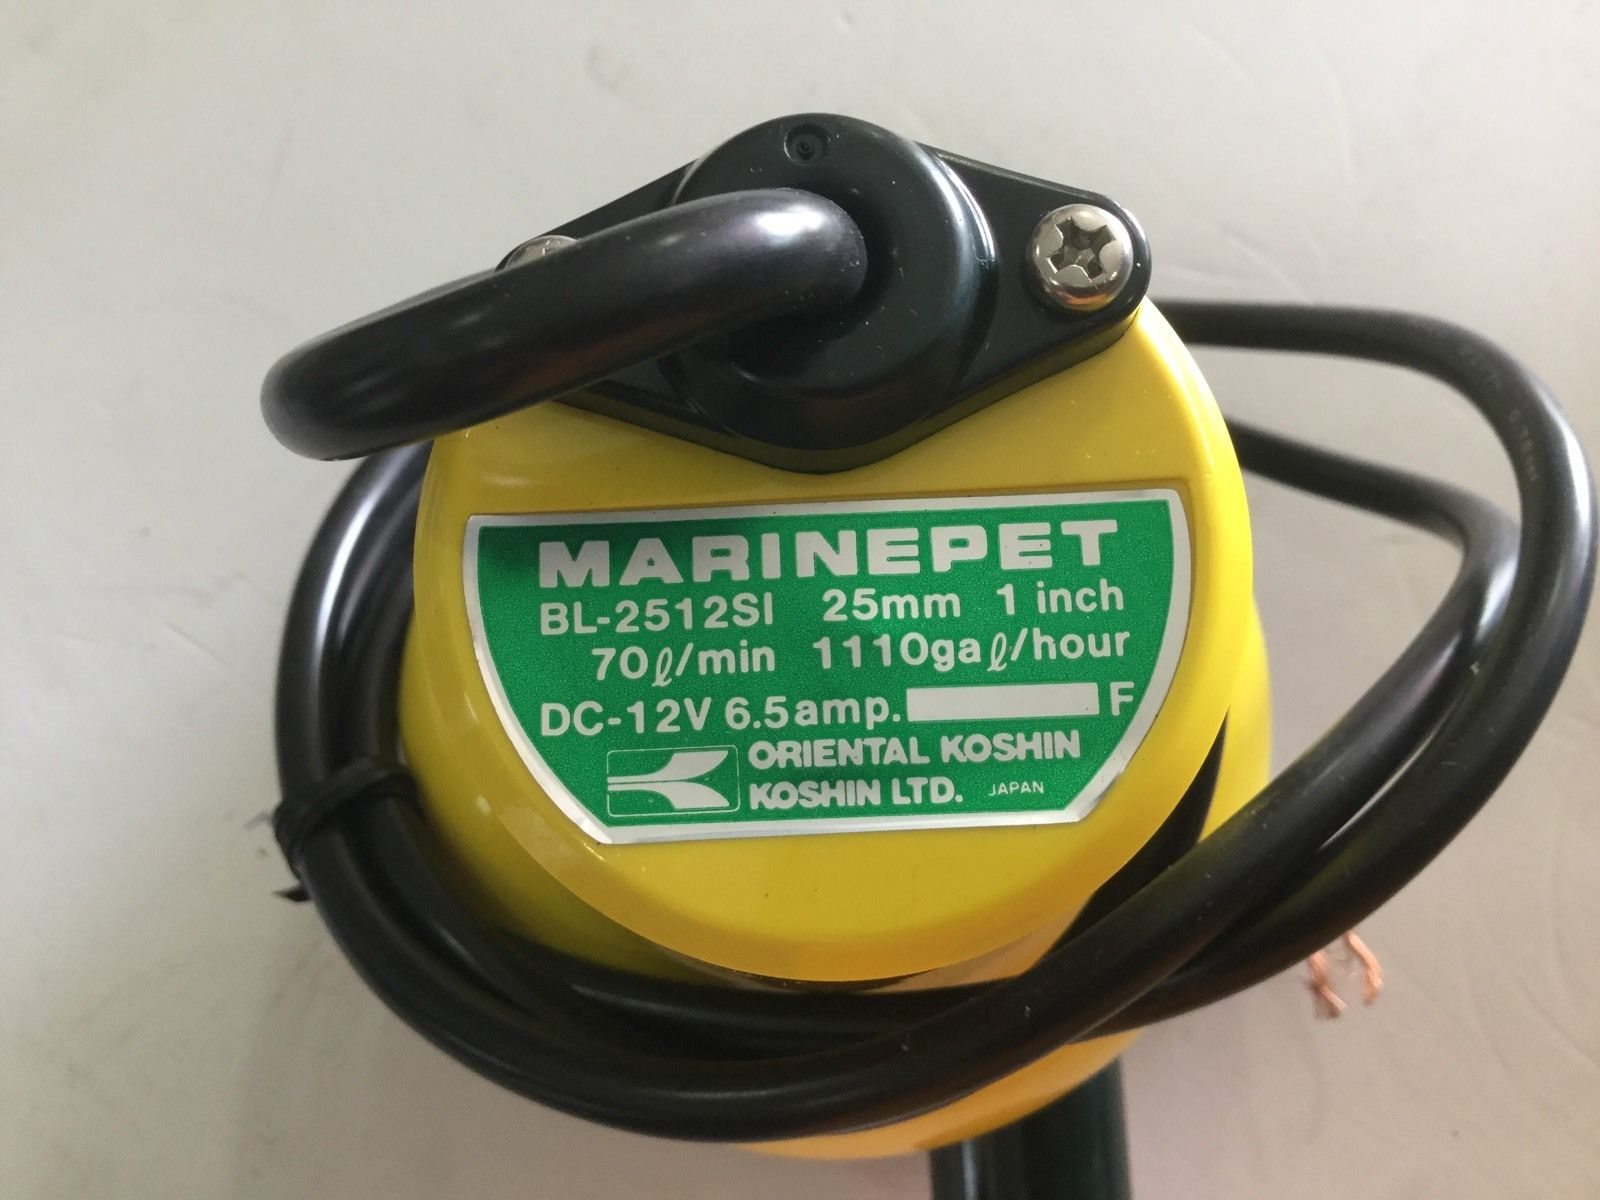 Bilge Pump Koshin Marine Pet 1100 Gal Made In Japan